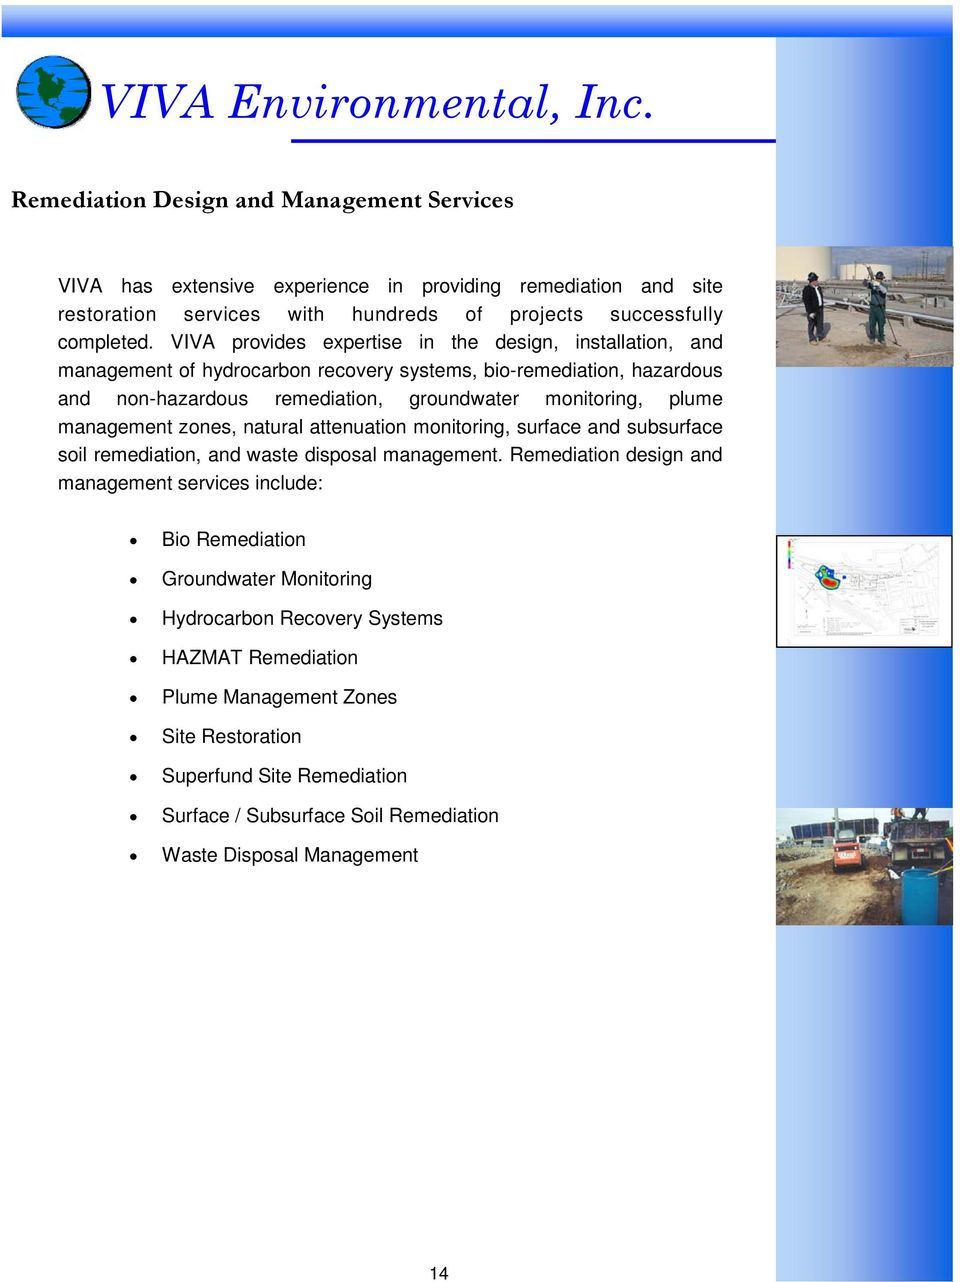 management zones, natural attenuation monitoring, surface and subsurface soil remediation, and waste disposal management.